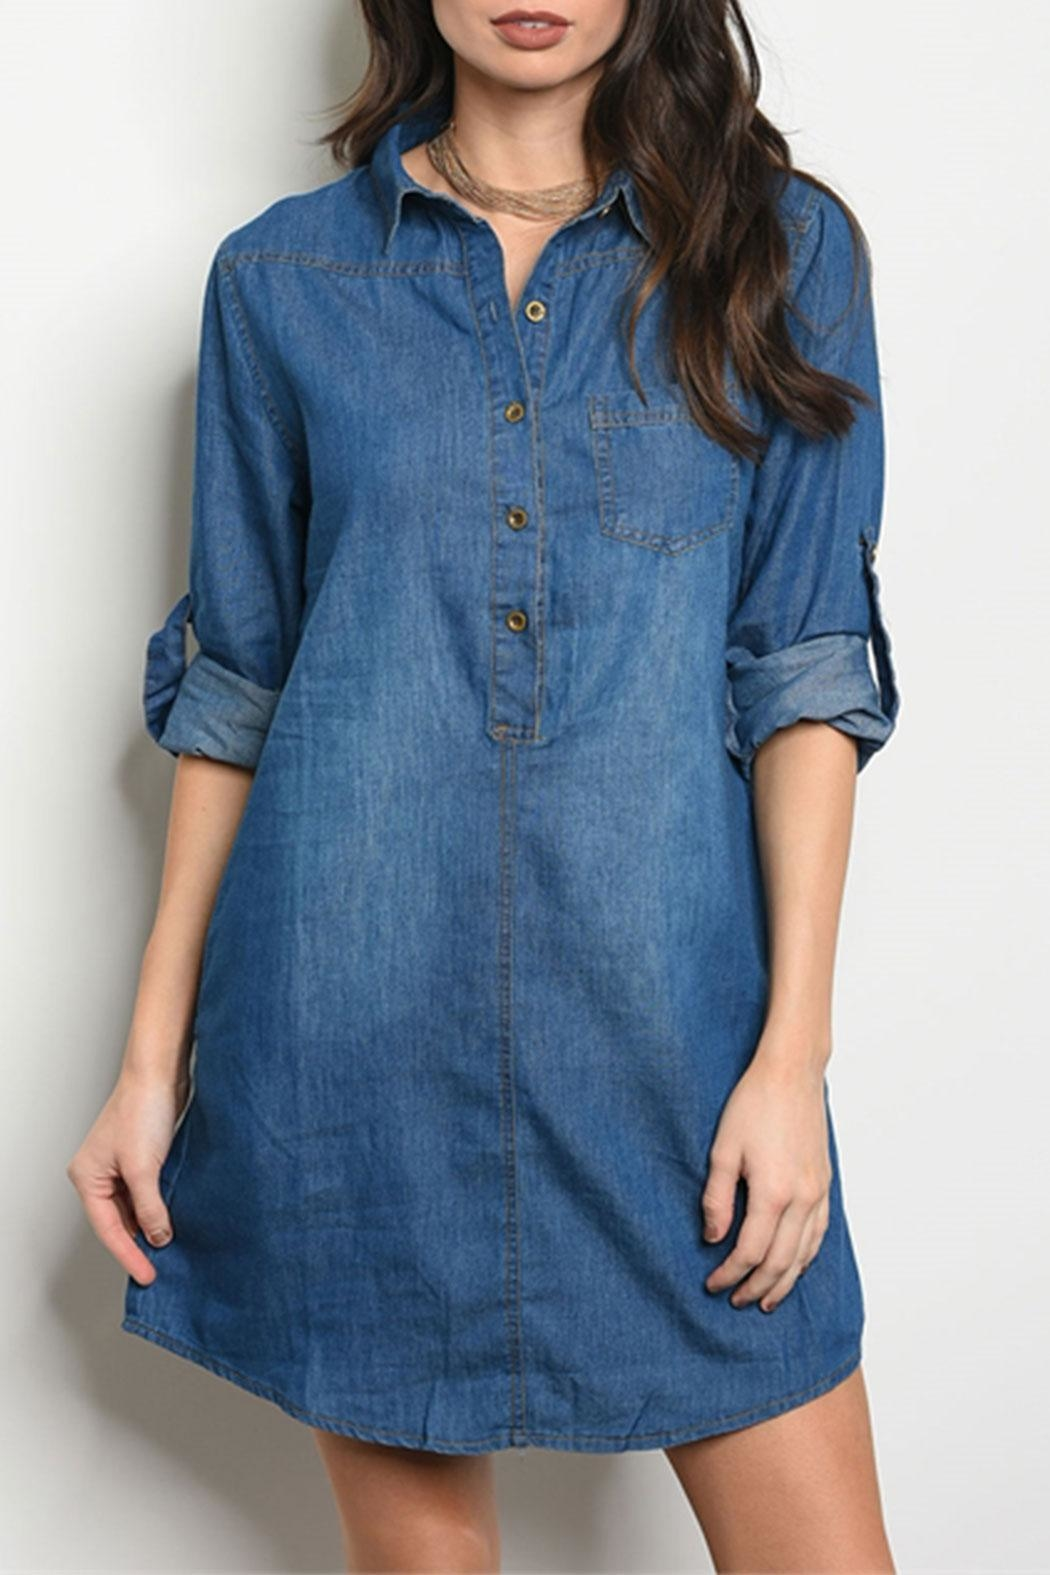 DIVA FASHION Blue Denim Dress - Main Image